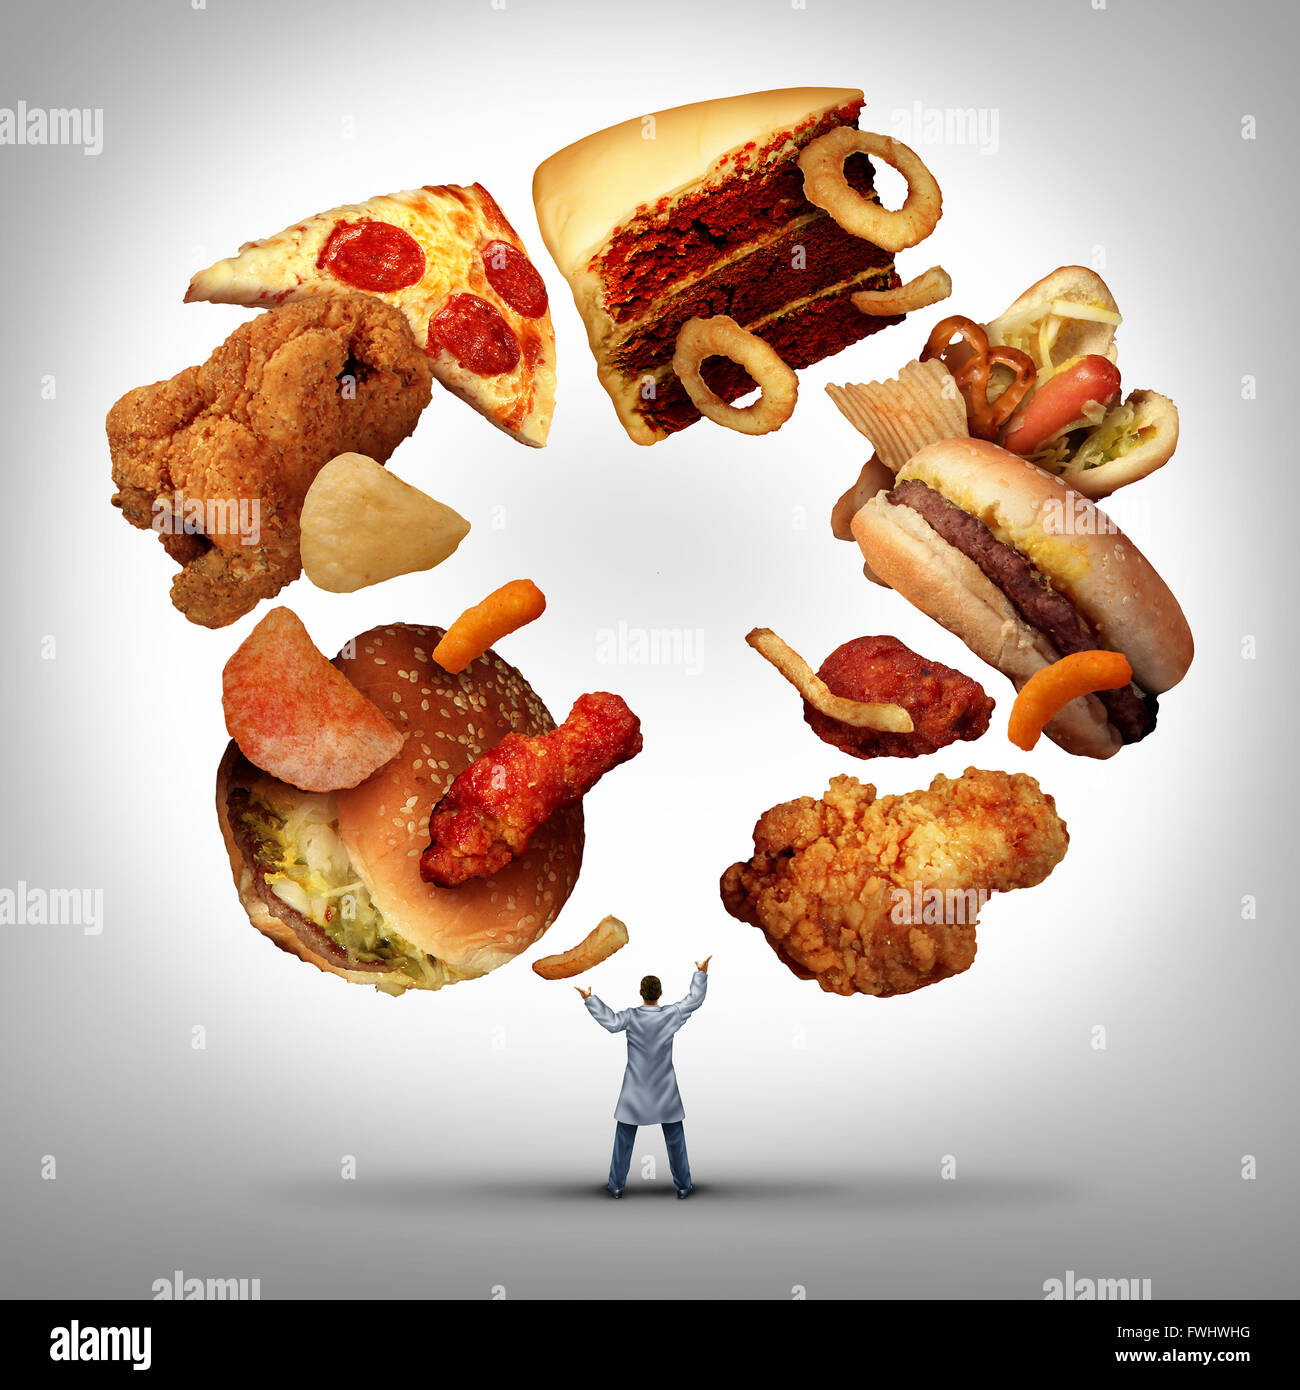 Nutritionist doctor or dietician and dietitian professional unhealthy food concept as a medical physician juggling - Stock Image